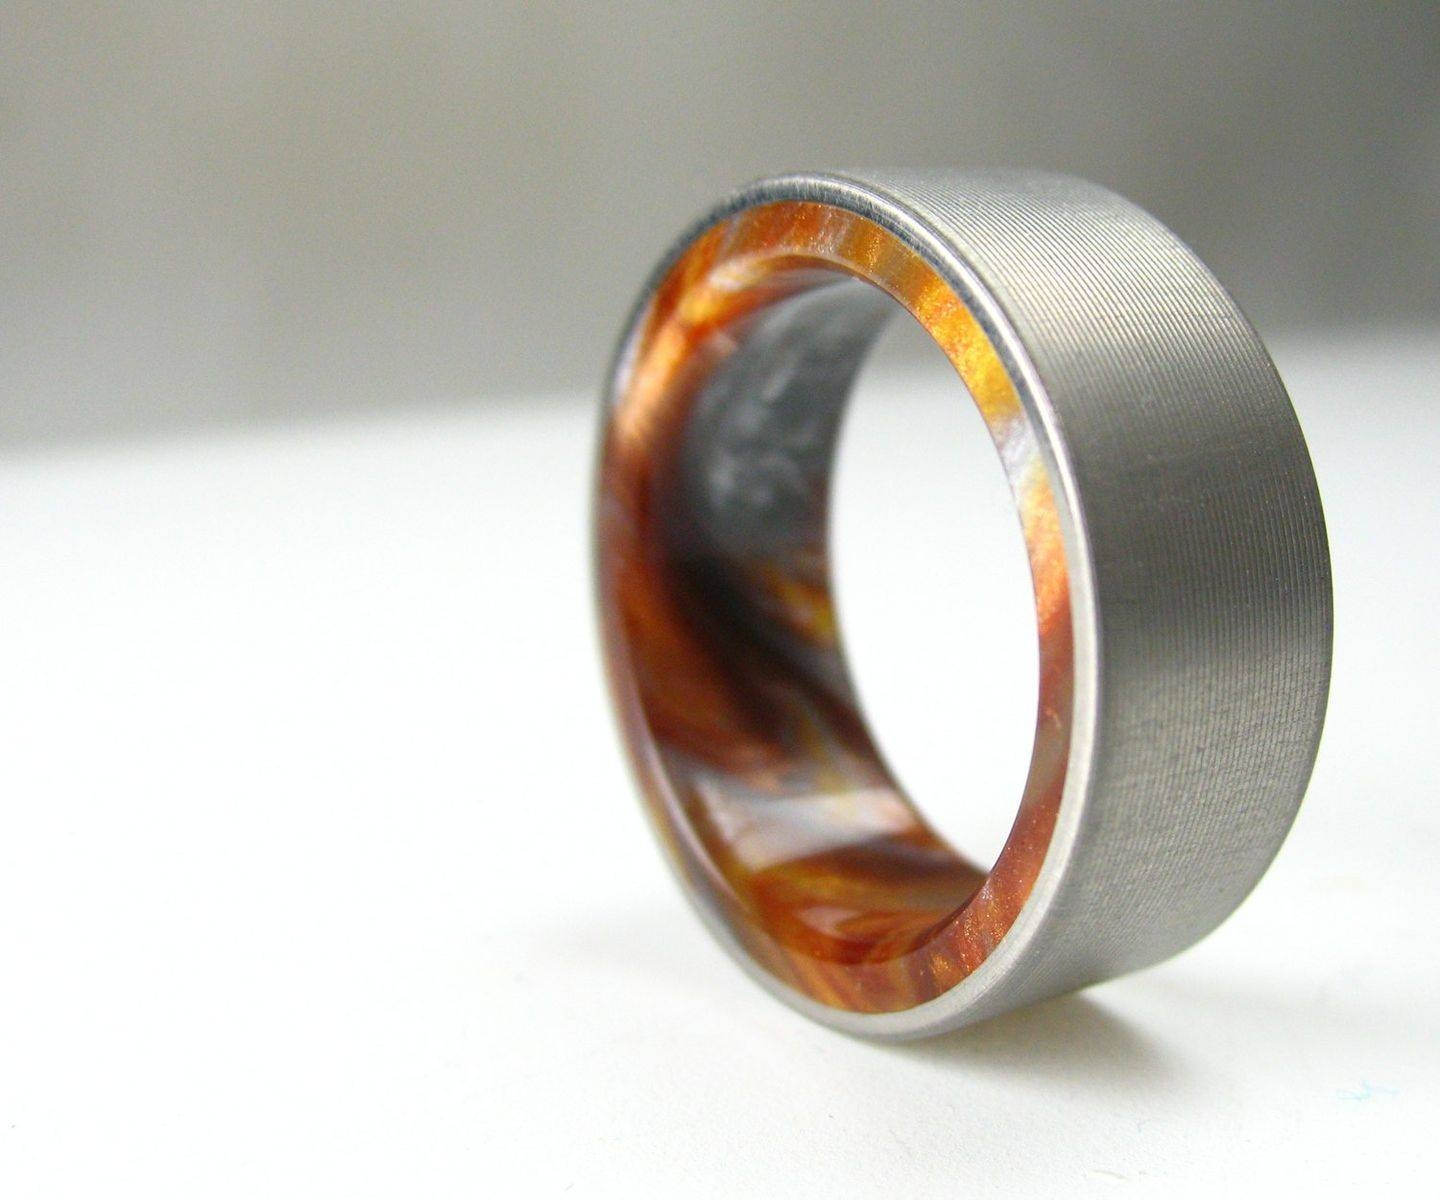 Modern Wedding Bands | Contemporary Wedding Rings | Custommade Pertaining To Mens Wooden Wedding Bands (View 5 of 15)